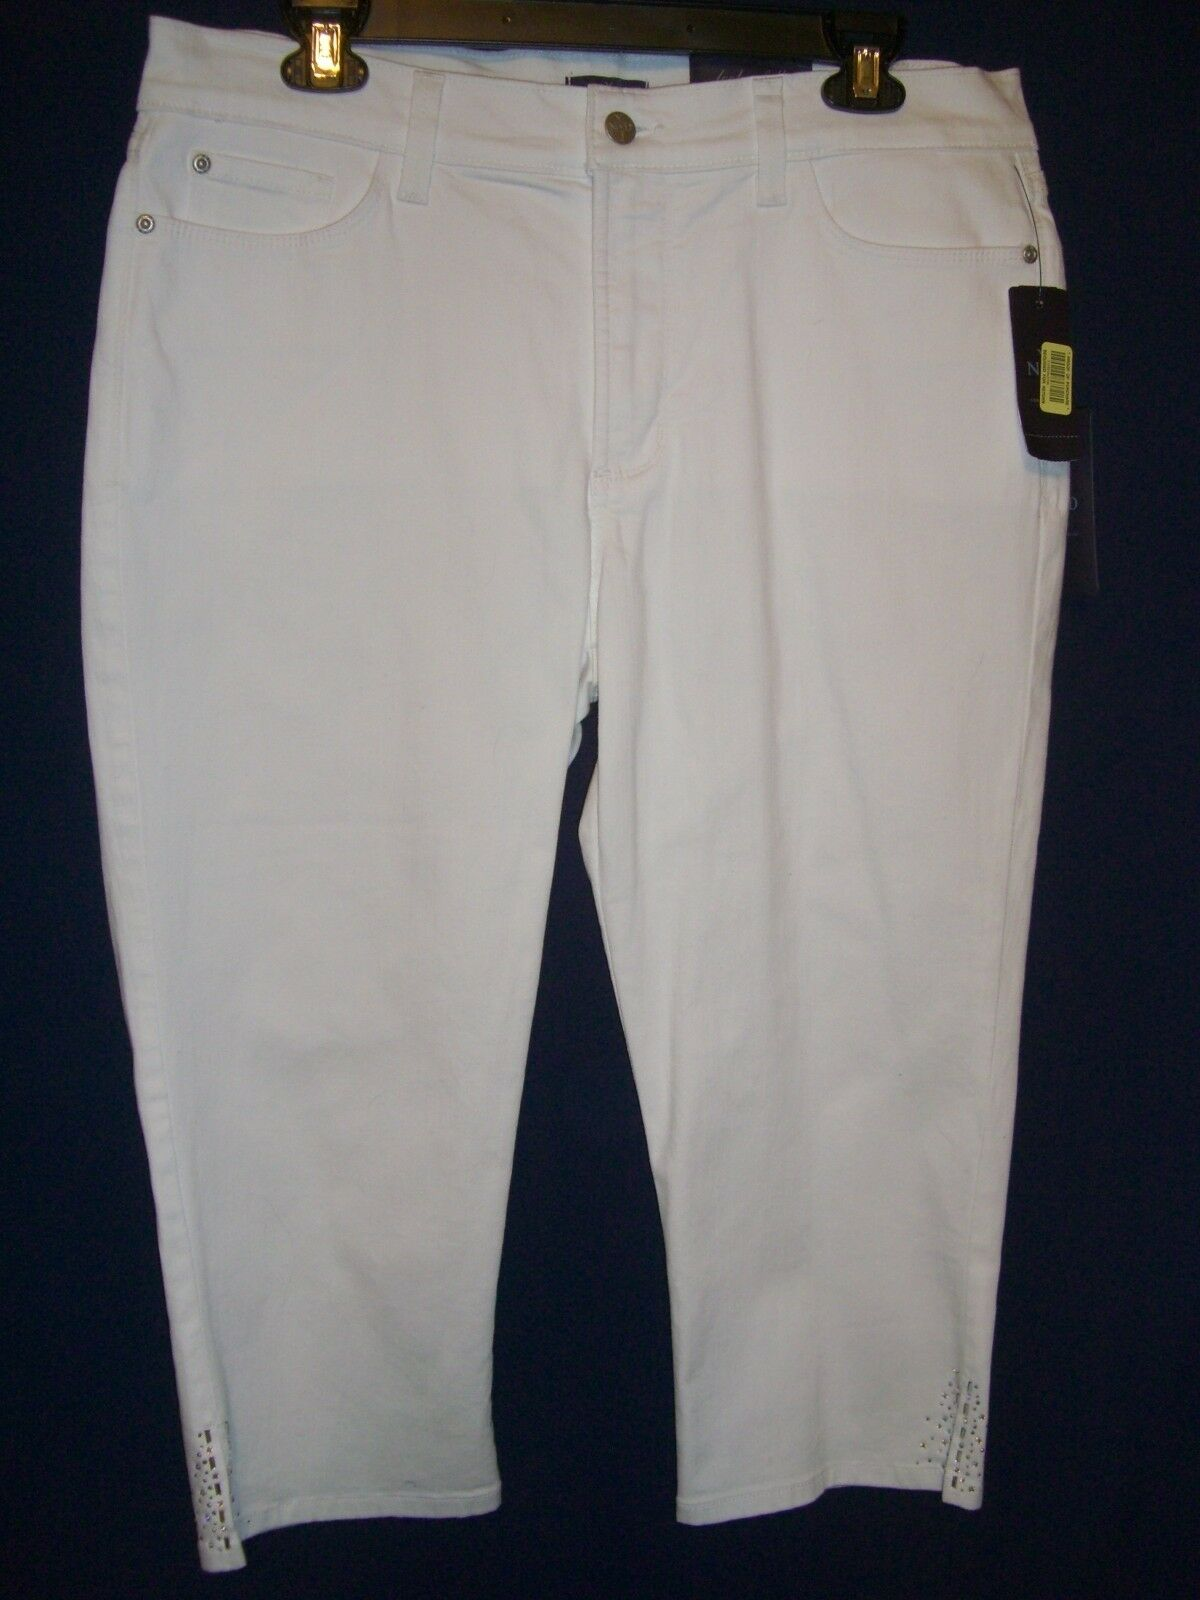 NYDJ NOT YOUR DAUGHTER'S JEANS Optic White Cropped Capri Pants  14P Petite - NWT